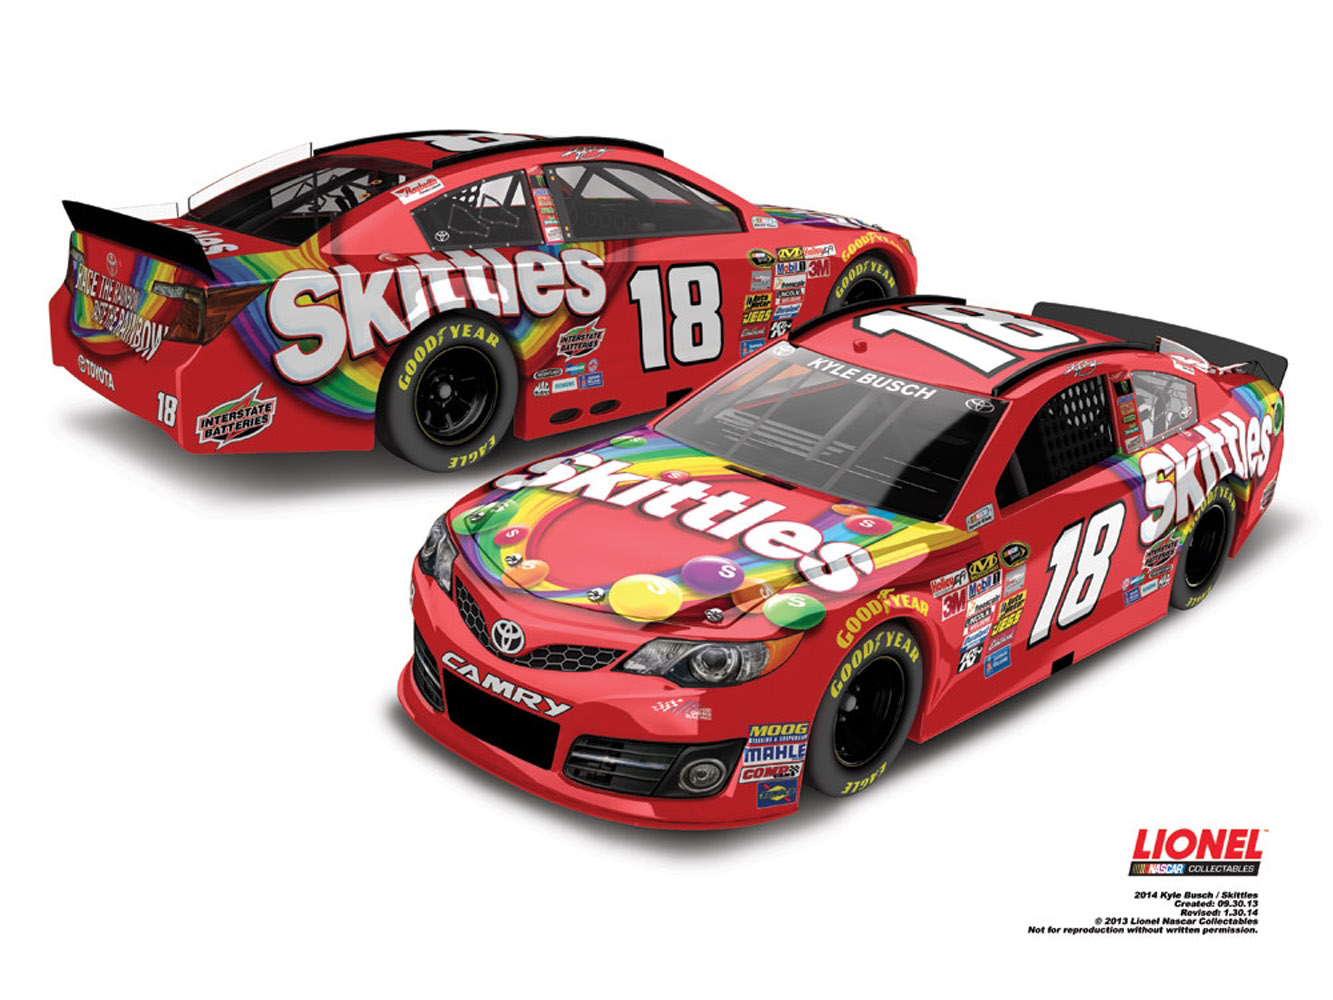 2014 Kyle Busch #18 Skittles Color Chrome 1:24 Diecast Car